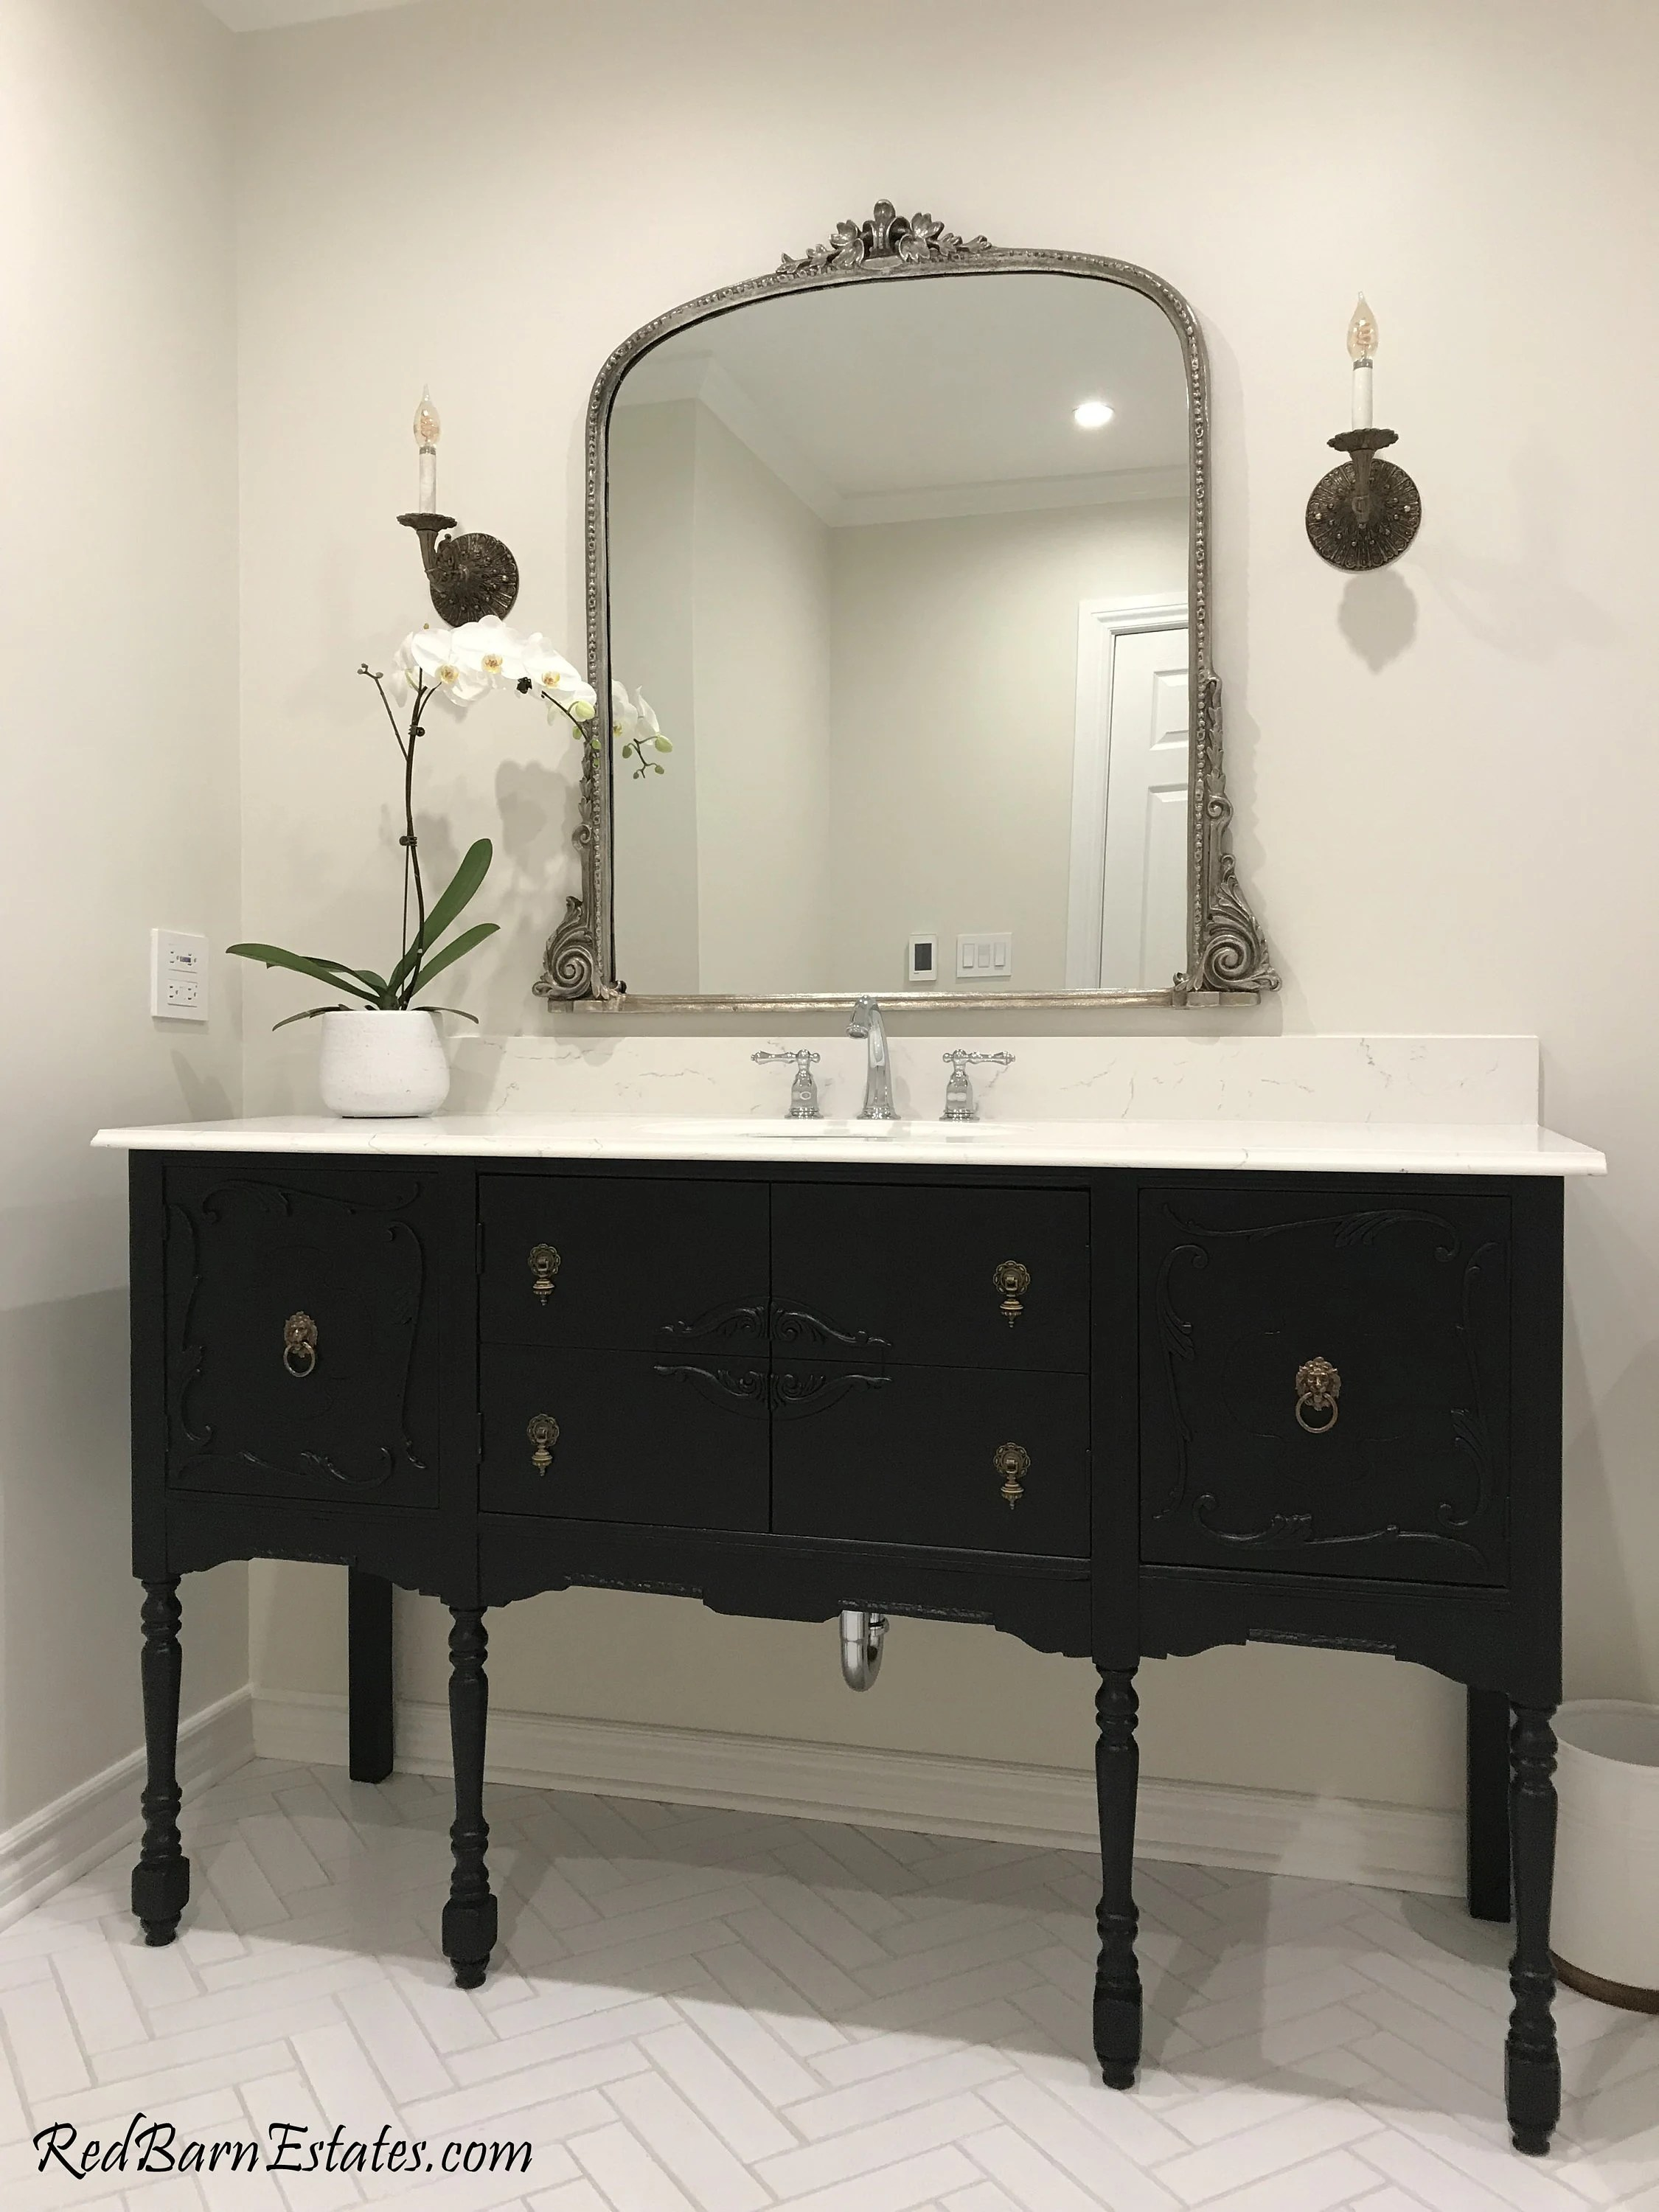 antique bathroom vanity for single or double sink we custom convert from antique furniture for you reno remodeling 61 to 66 wide